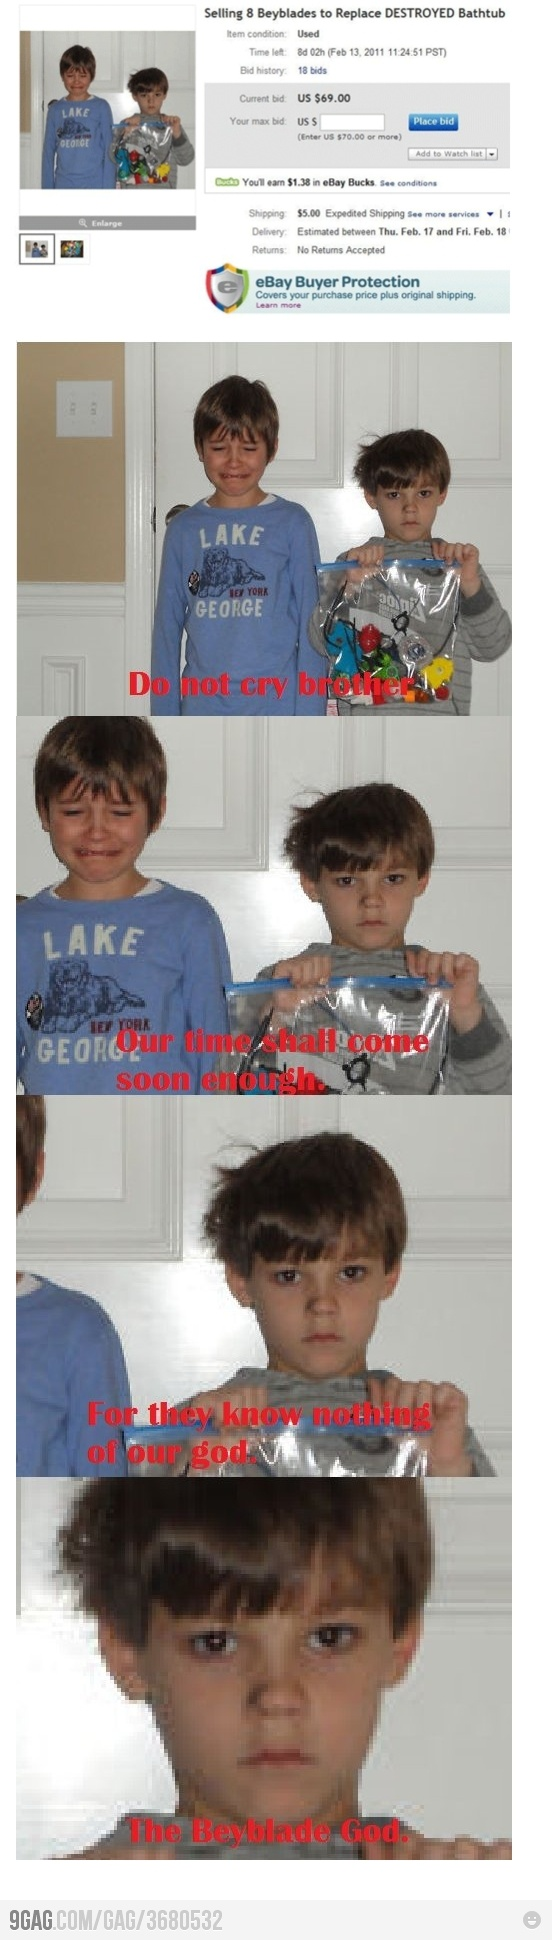 do not cry brother.... lmao!!! laughed so hard made me almost cry in class hahahaha :D